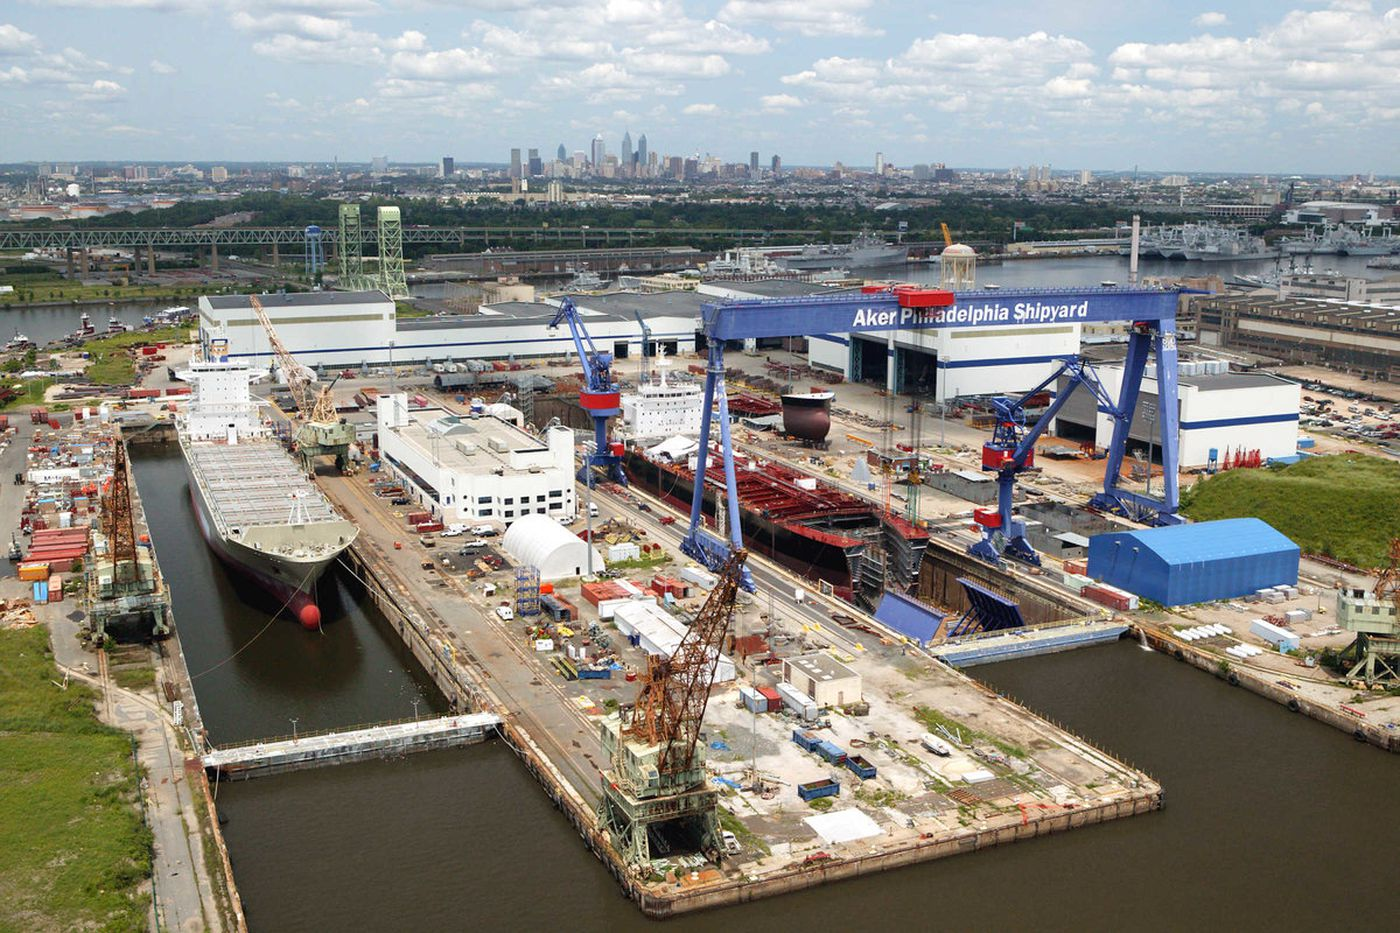 Buying American can help keep the Philly shipyard afloat | Opinion